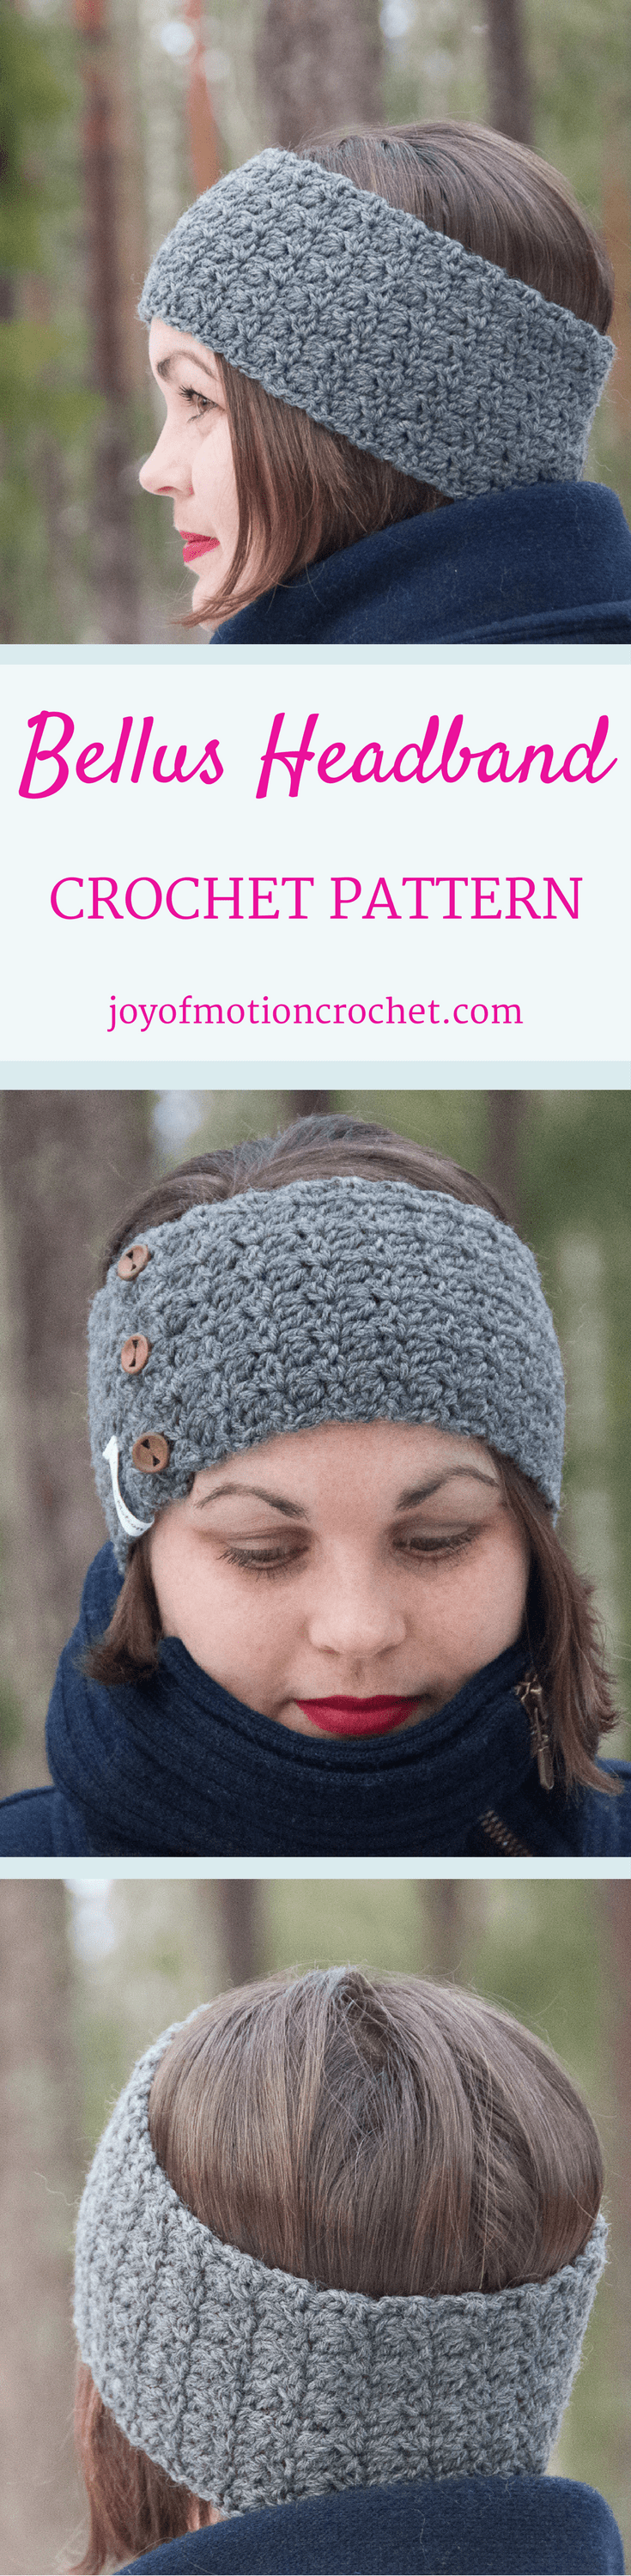 The Bellus headband. Crochet pattern for a warm winter headband.| Headband crochet patterns.. Beanie crochet patterns. Warm crochet pattern. Headband crochet designs. Easy patterns. Winter crochet patterns. Customize crochet pattern headband. Women's crochet pattern headband. Crochet pattern headband. Headband crochet pattern unisex. Click link to learn more.